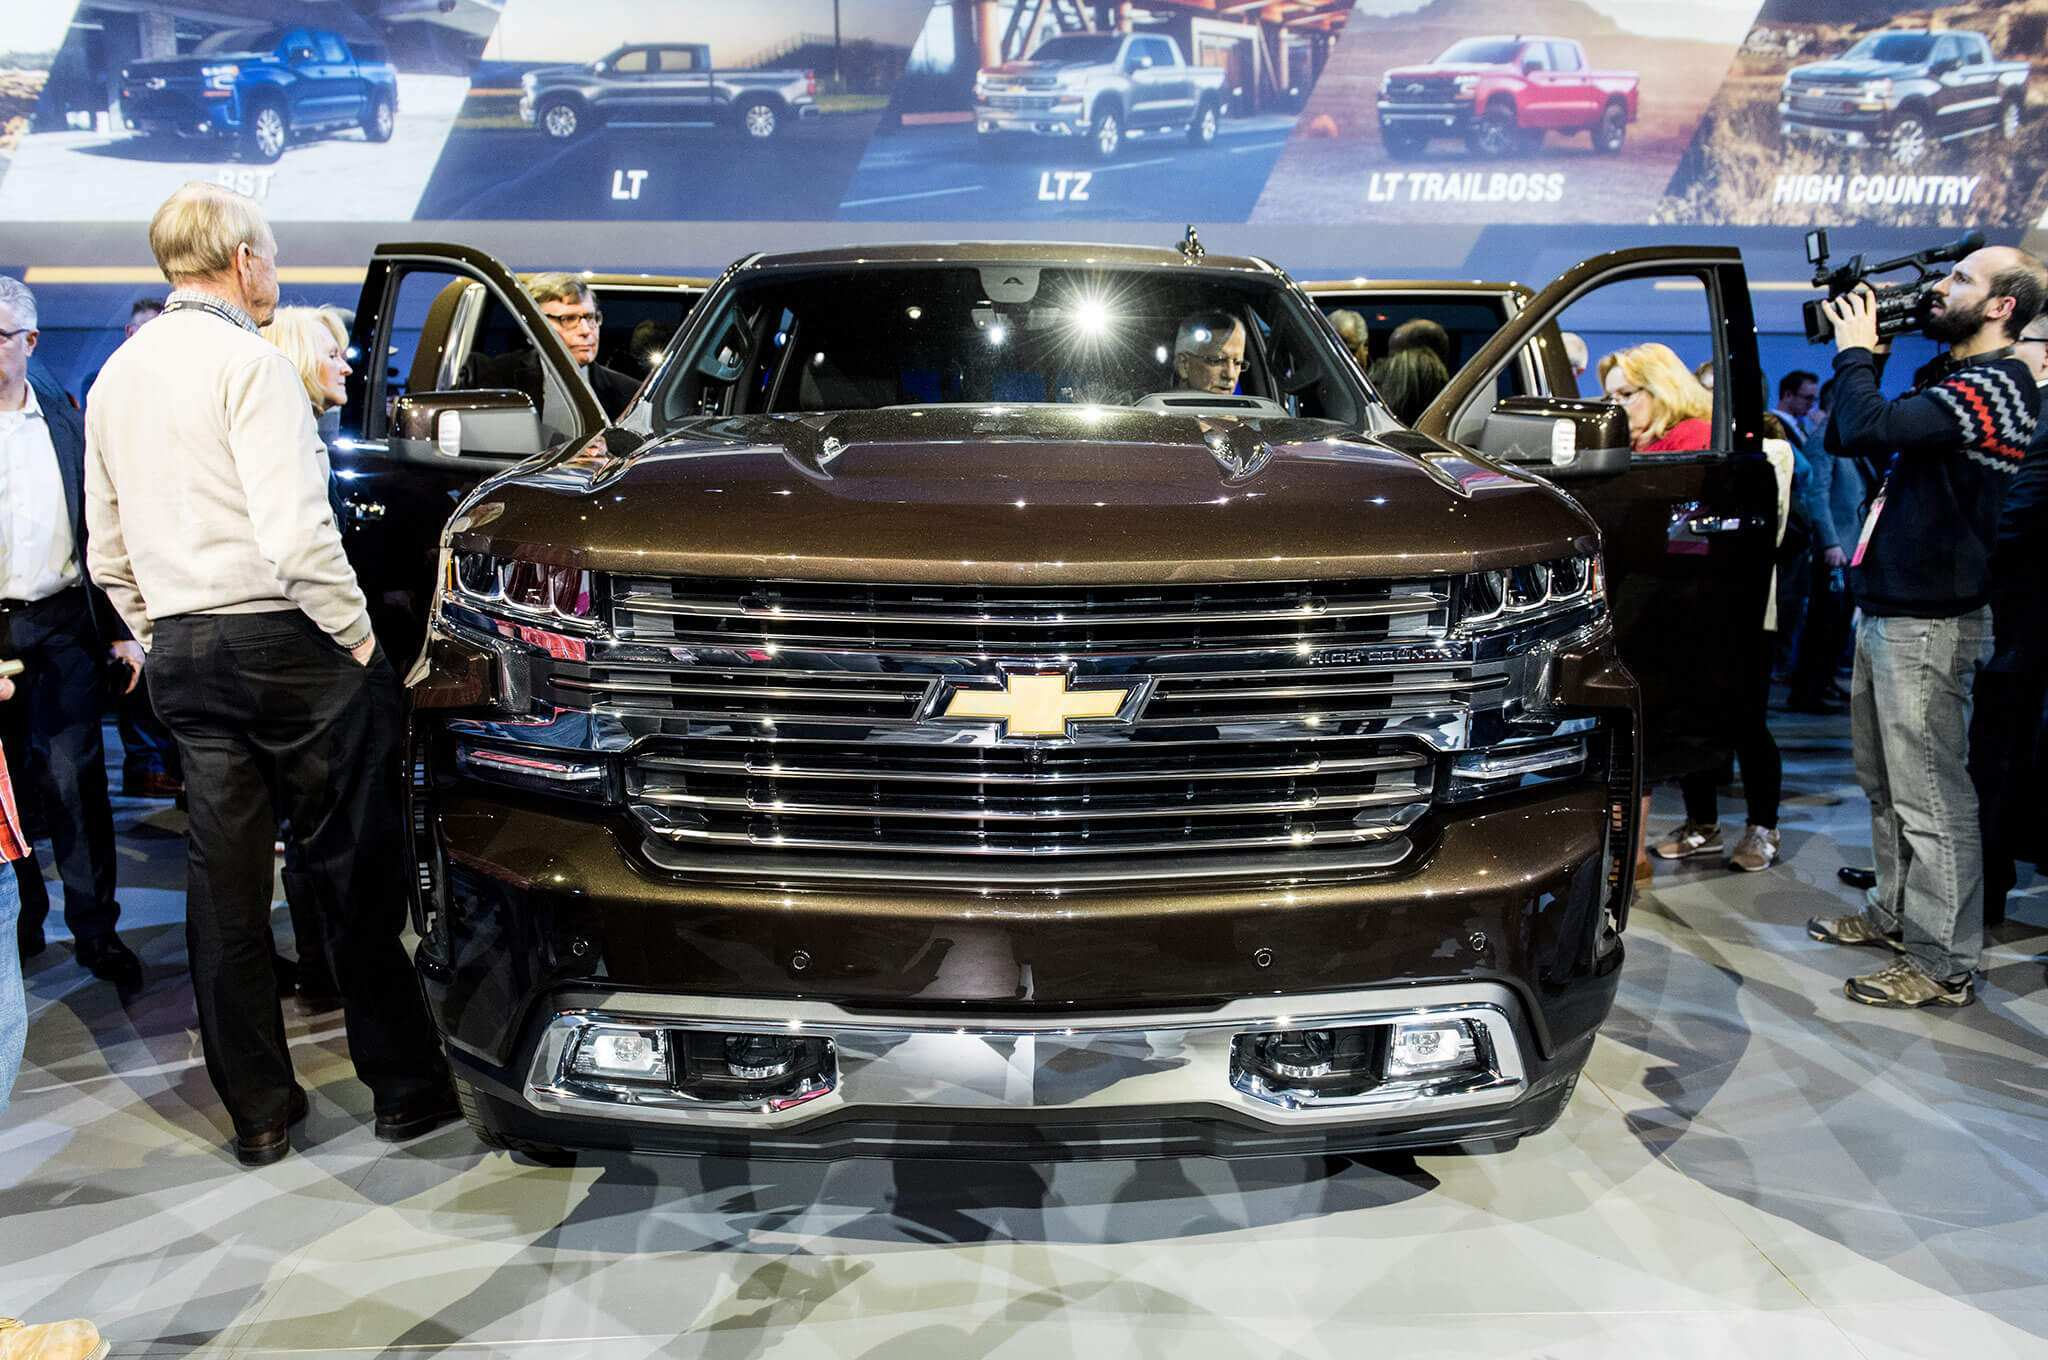 65 All New Chevrolet Vehicles 2020 Release Date with Chevrolet Vehicles 2020